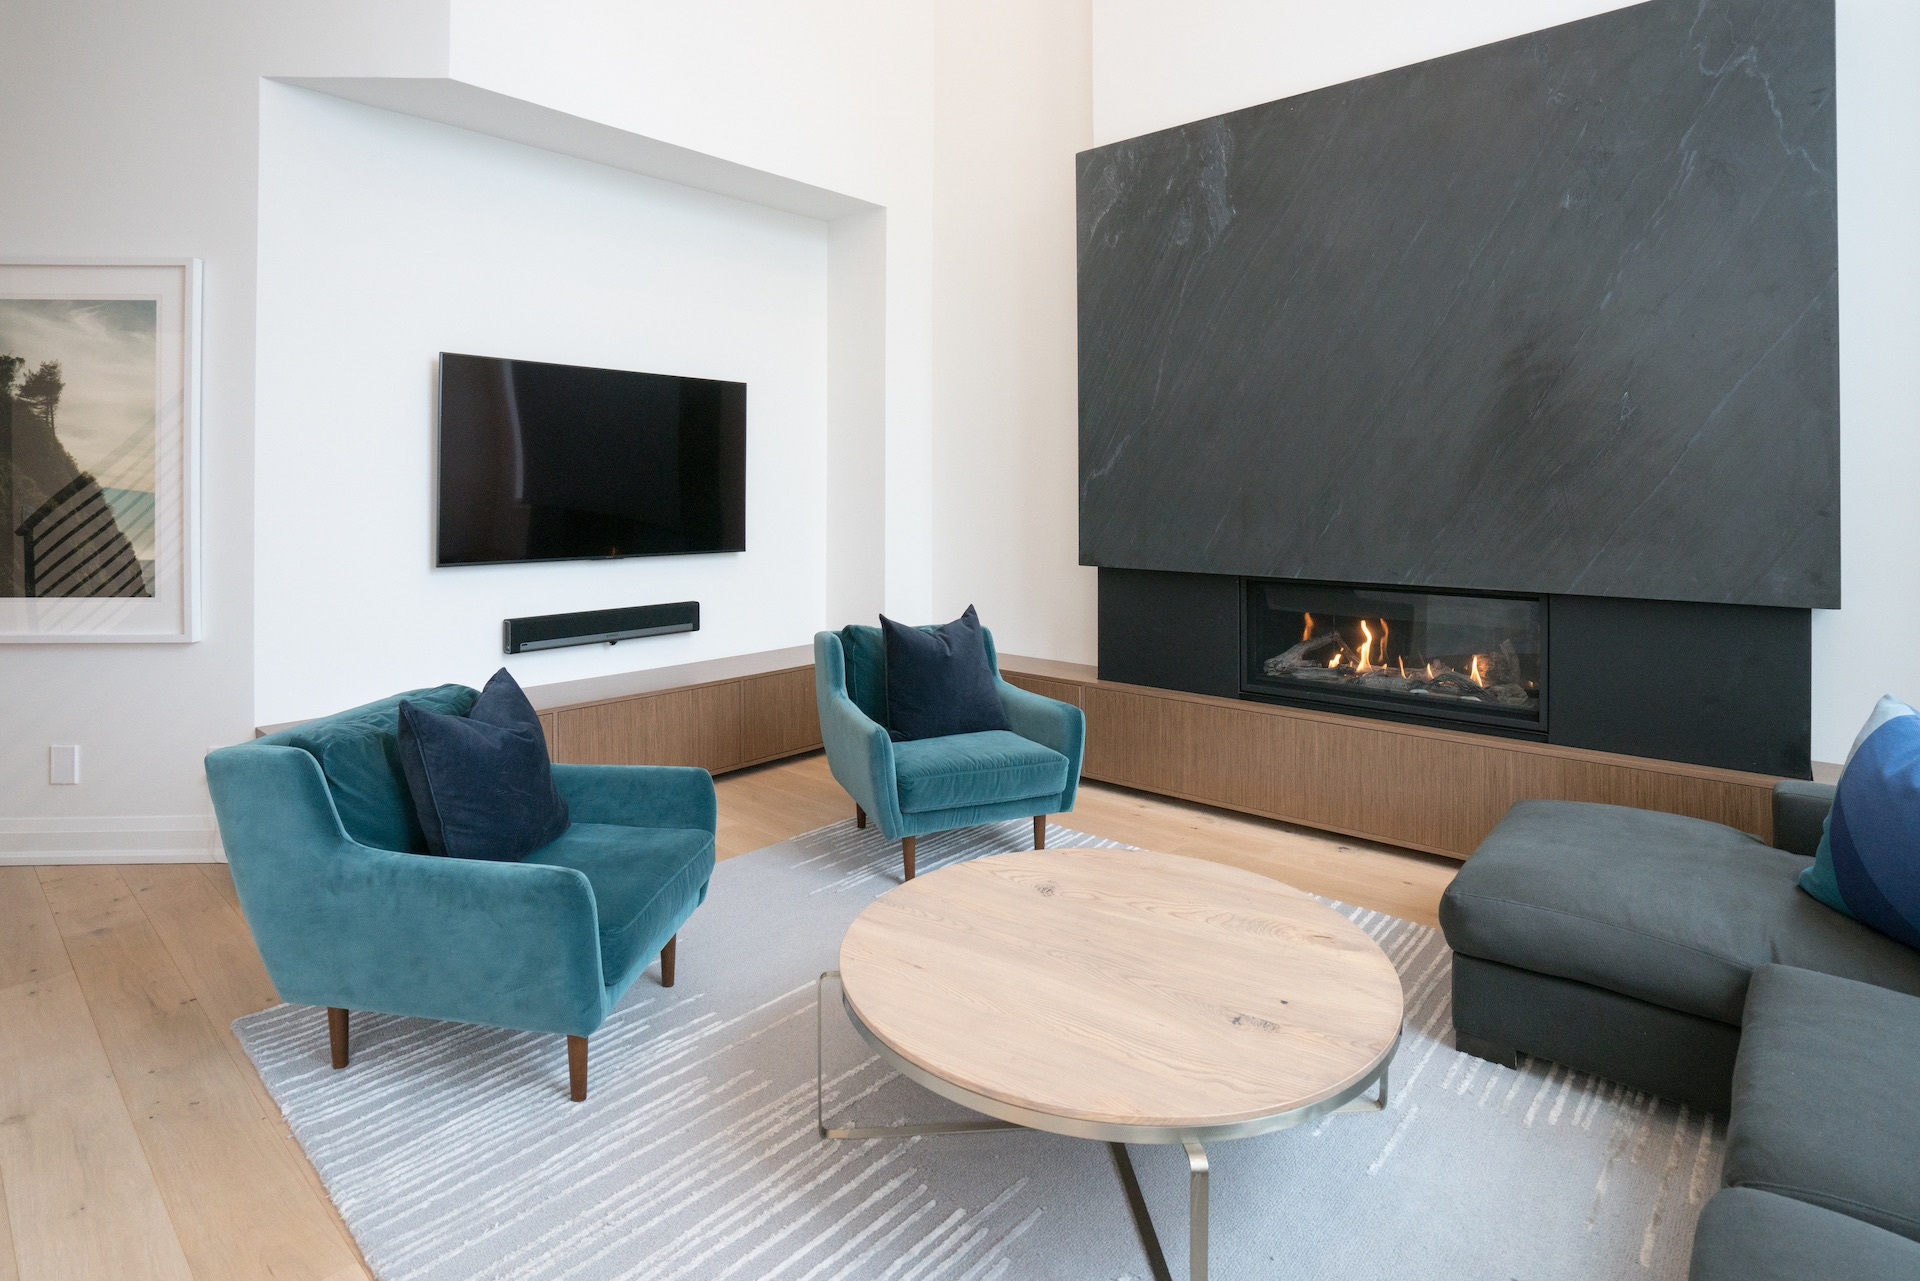 living room with tv on wall and green chairs